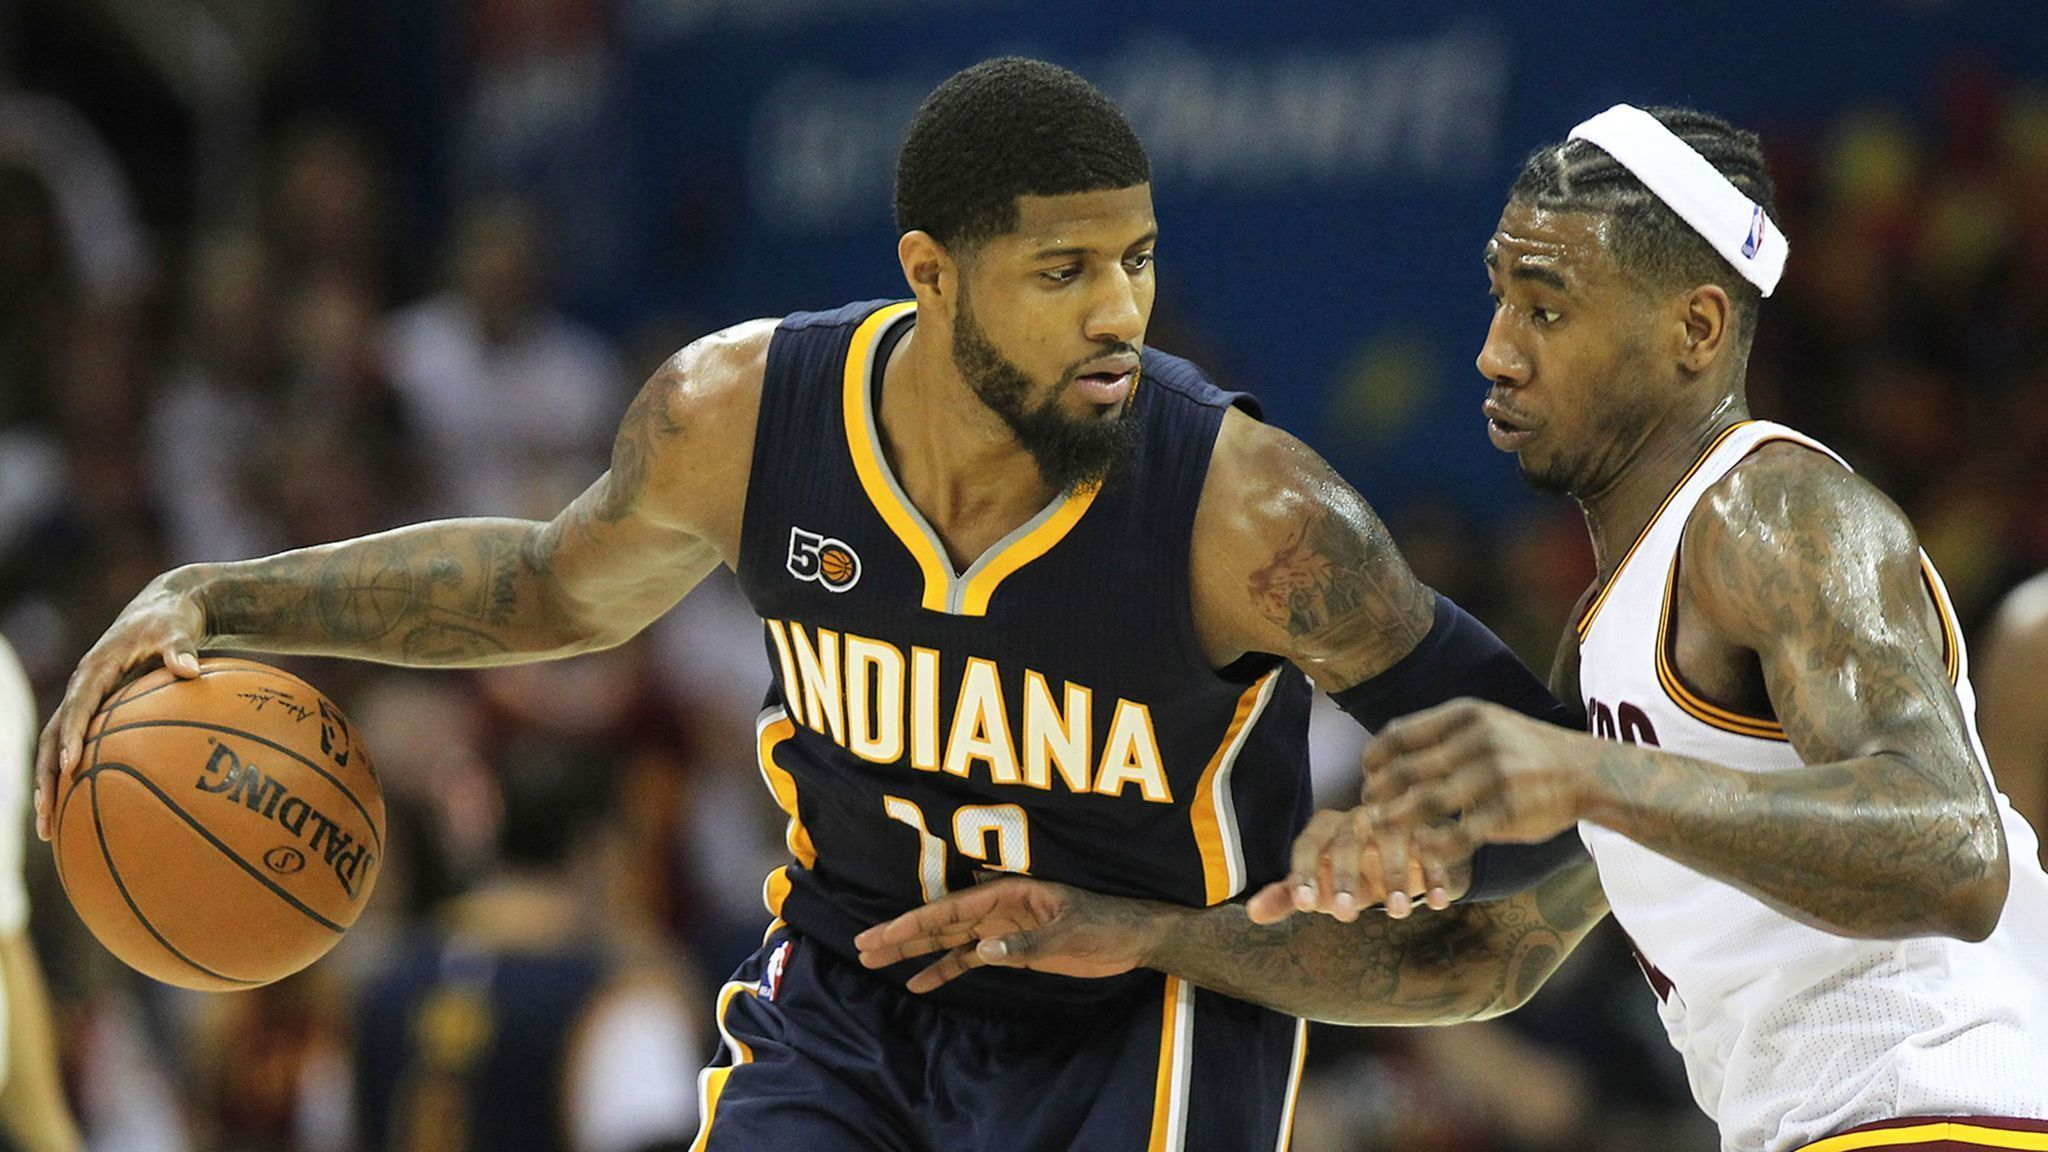 nydailynews.com Indianapolis retailer gives away its Paul George  merchandise after report he wants to leave Pacers in 2018 a436955a8307